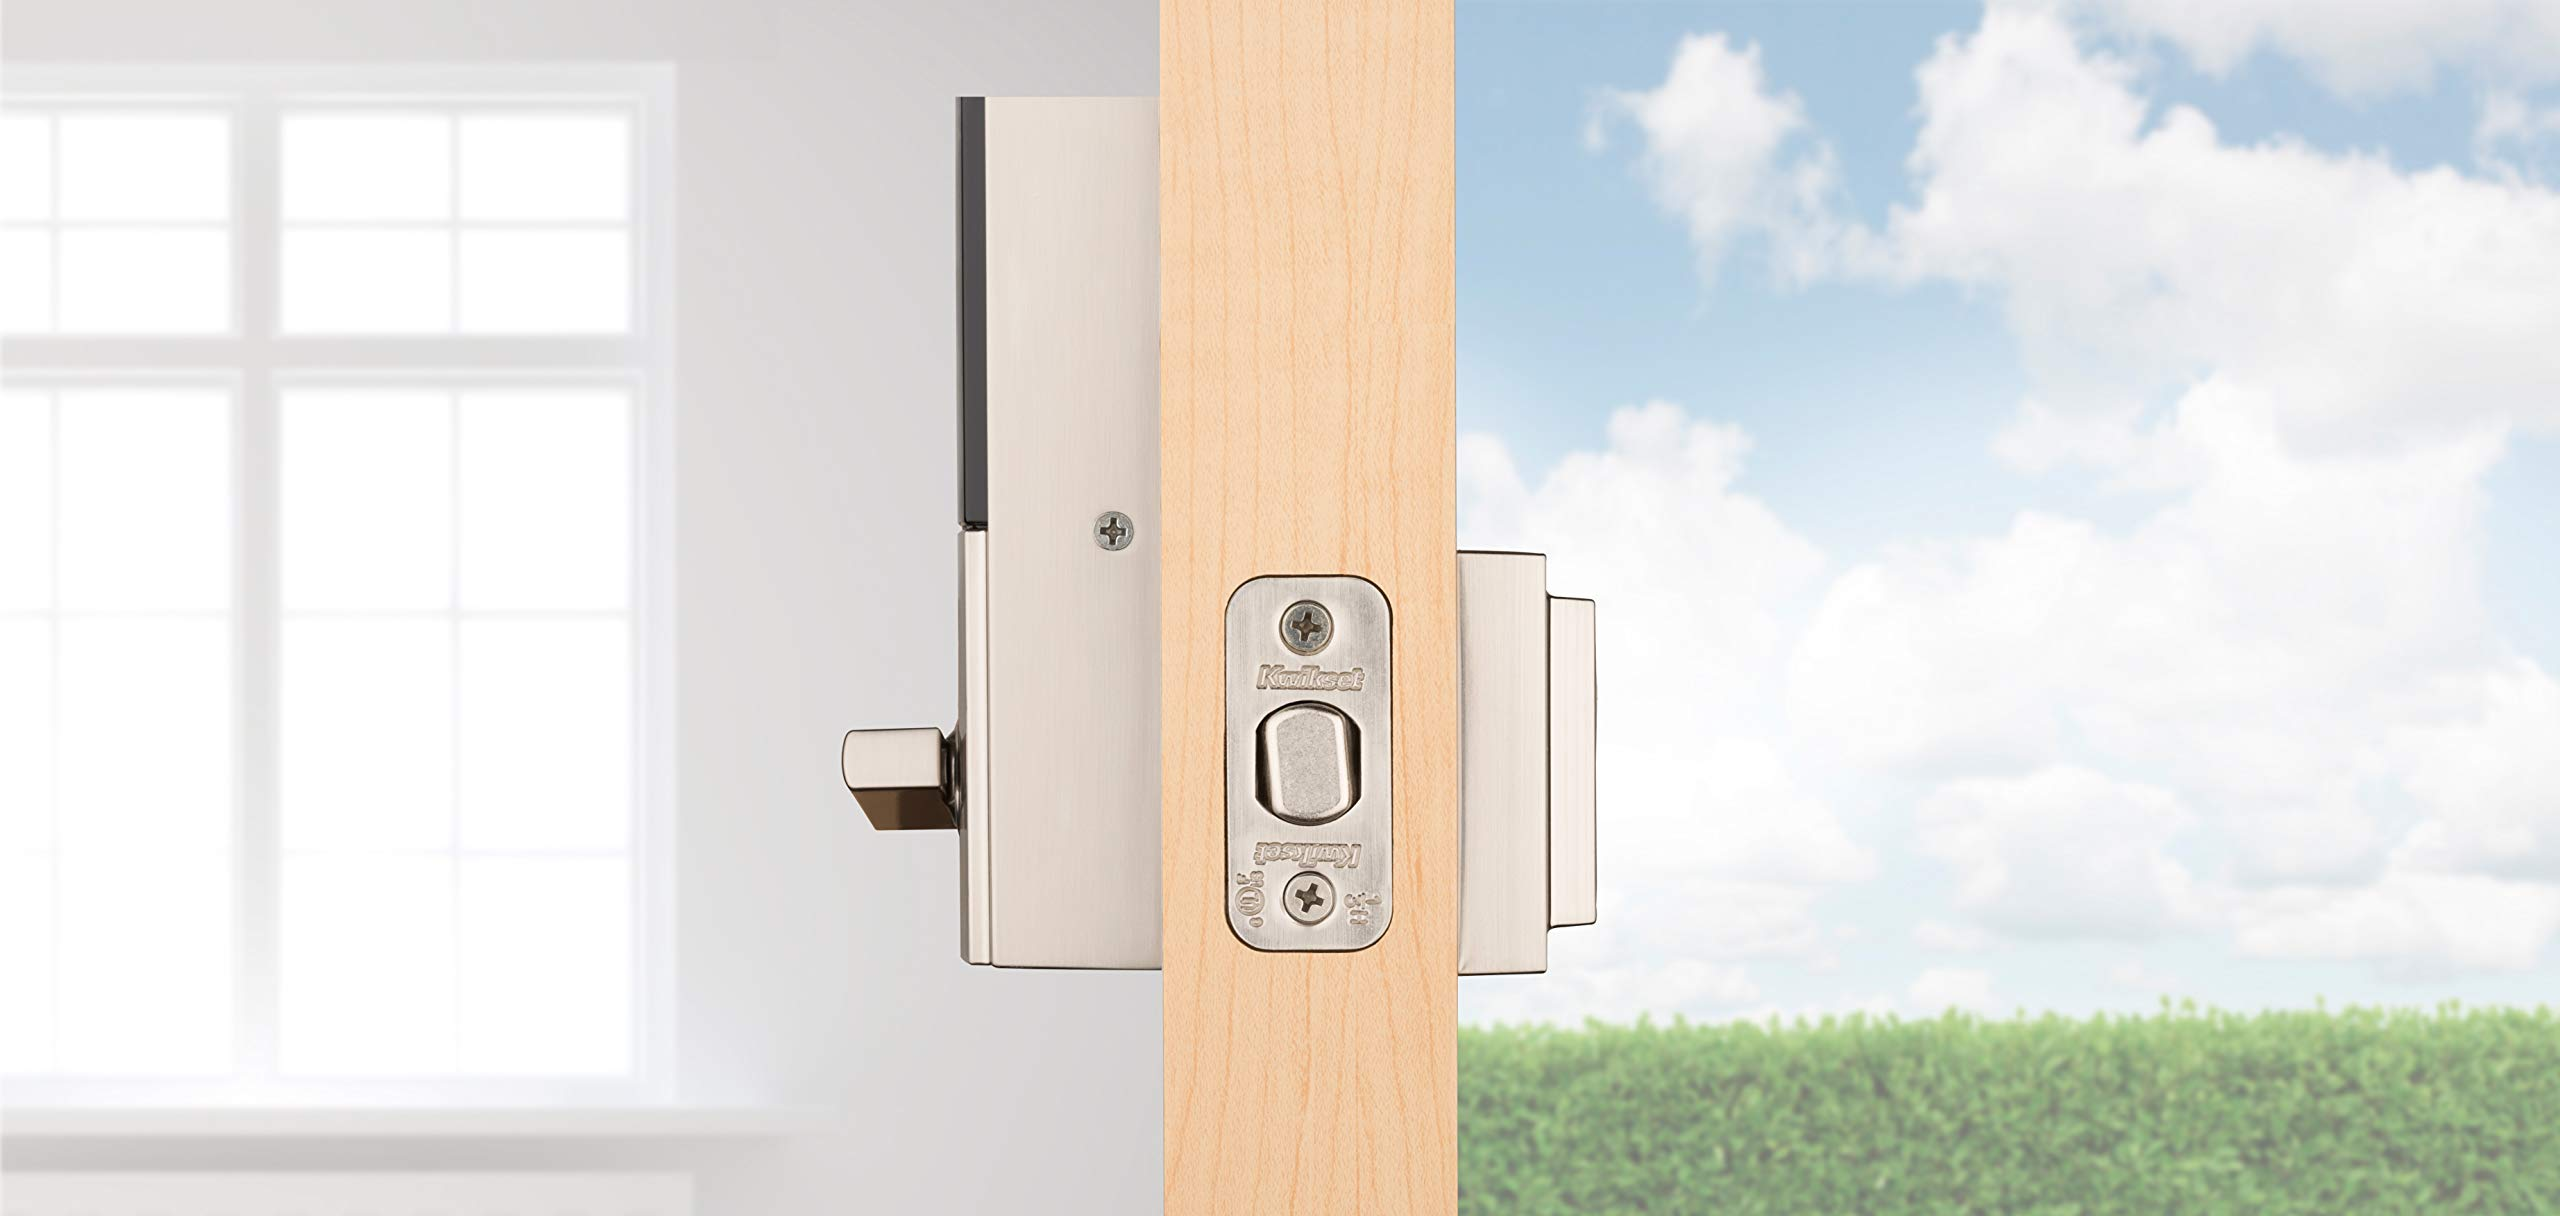 Kwikset 99250-206 Kevo 2nd Gen Contemporary Square Single Cylinder Touch-to-Open Bluetooth Deadbolt Satin Nickel by Kwikset (Image #4)